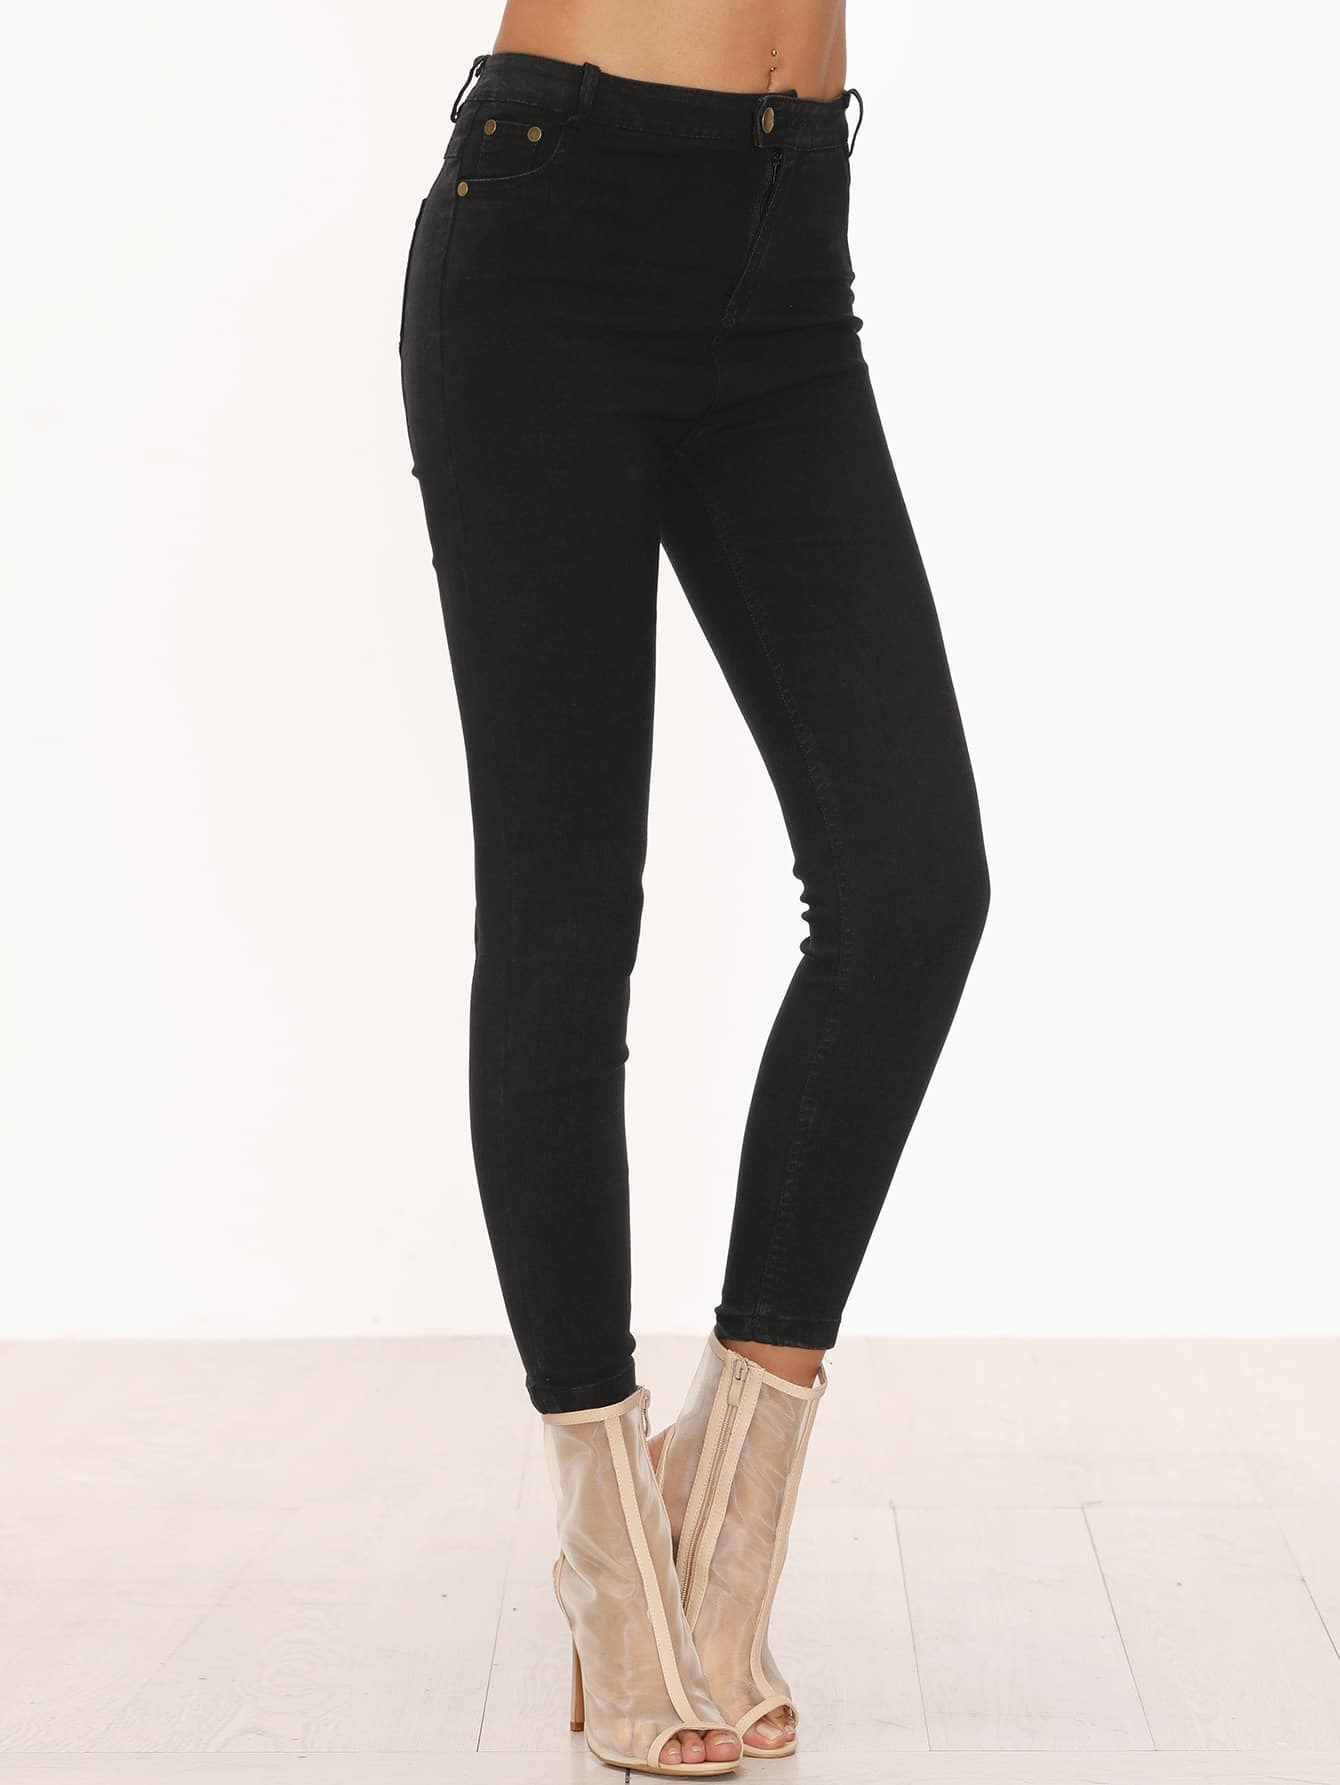 Find your new favorite pair of women's skinny jeans at Buckle. Discover a stylish selection of fits, washes, and styles at a great value.